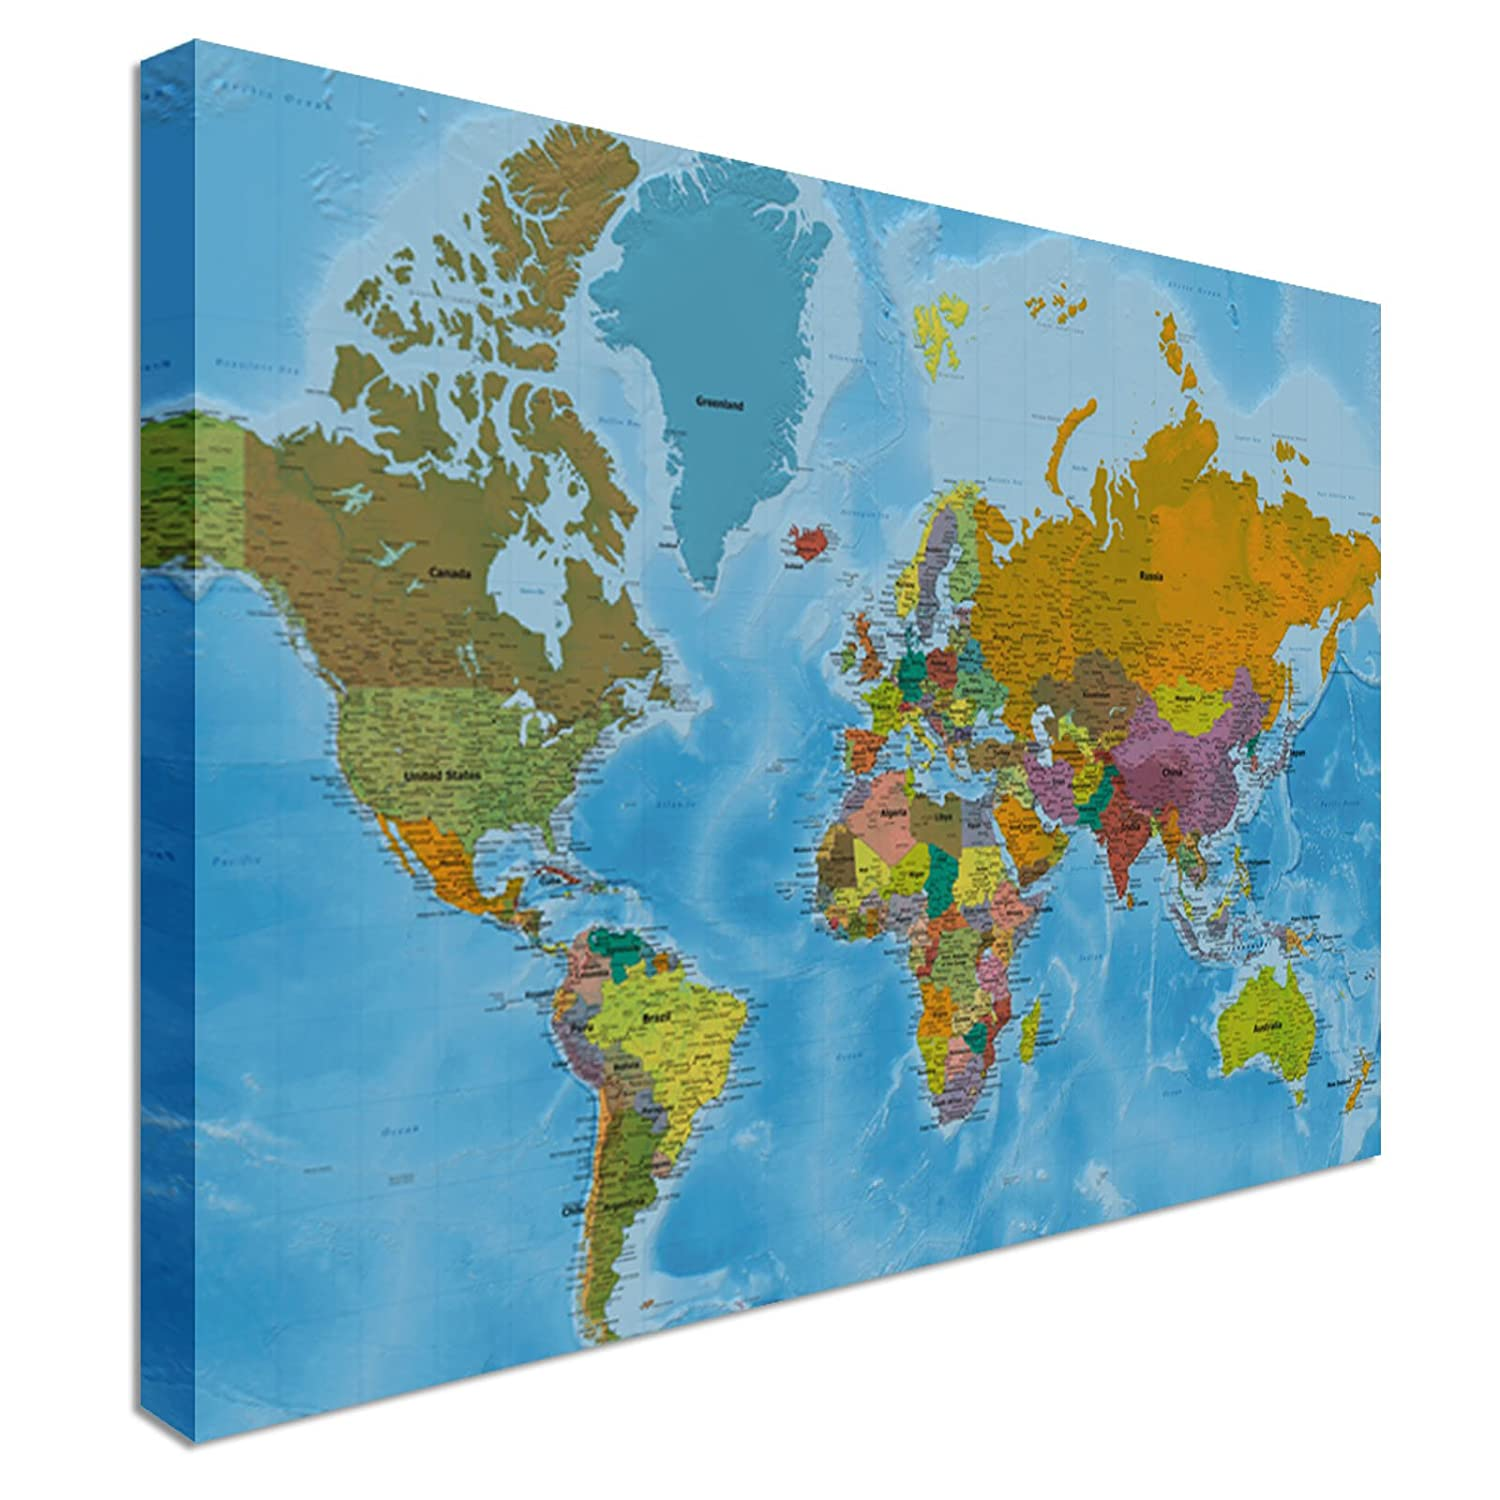 world map highest detail online hi res quality canvas wall art pictures 48 x 30 inches amazoncouk kitchen home